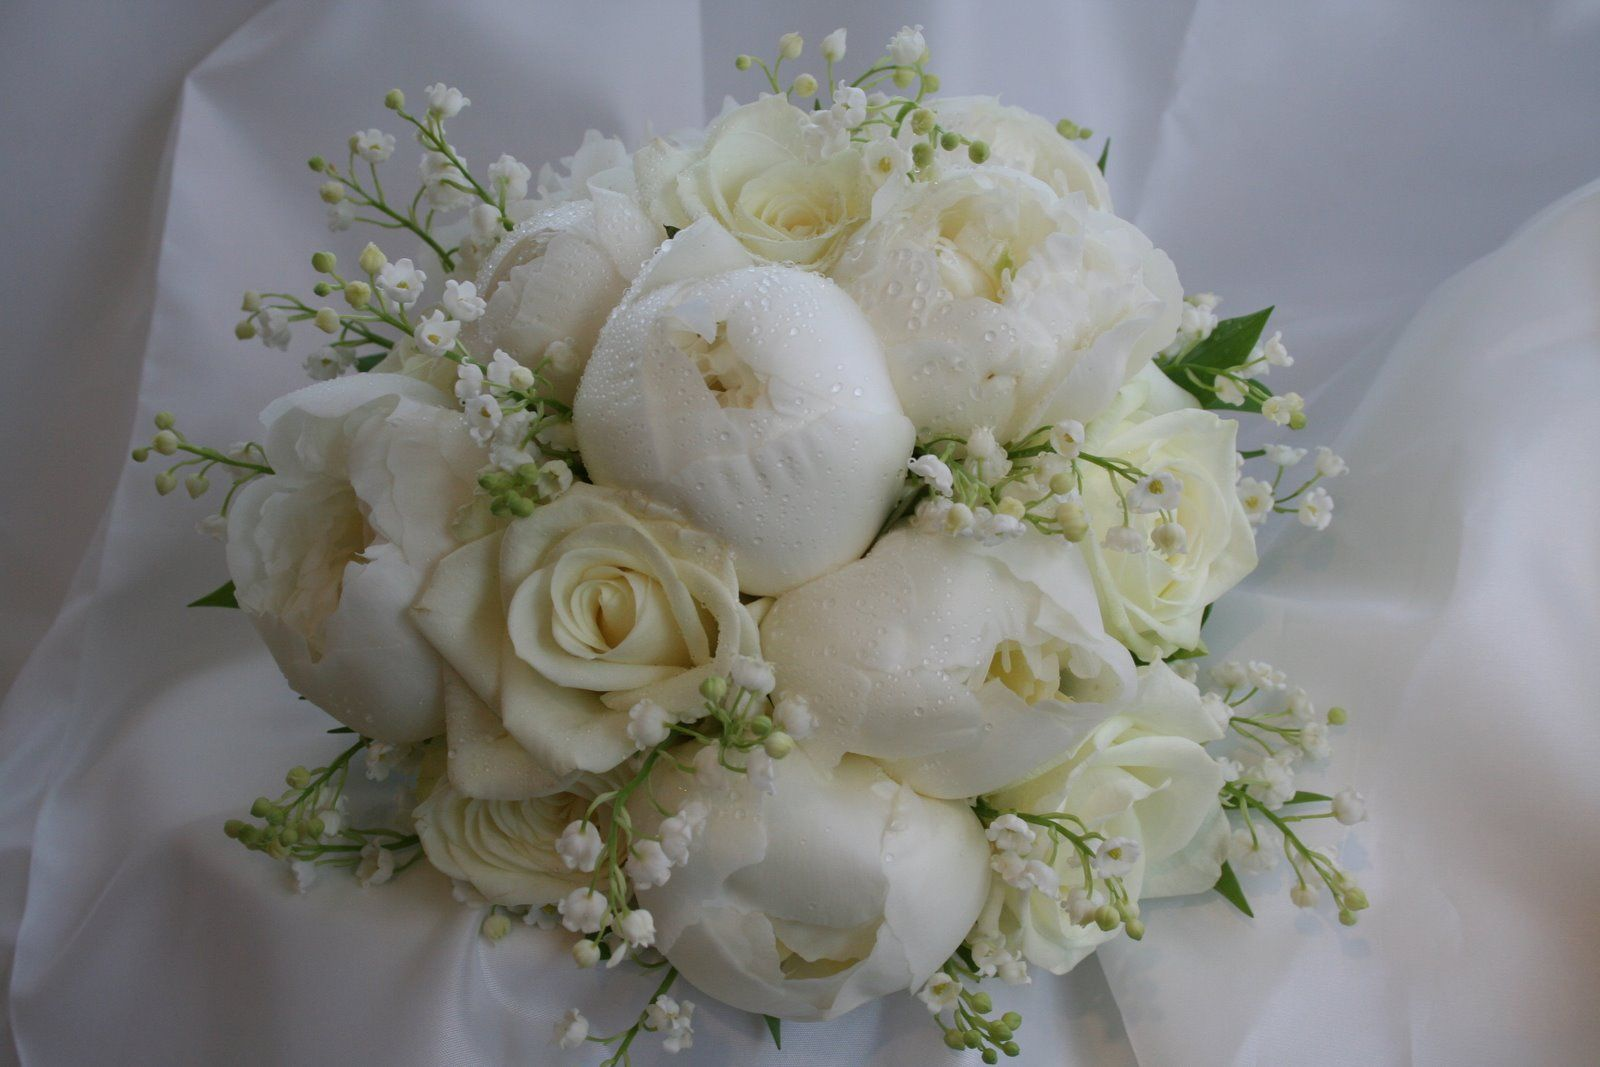 Bridal Bouqet Of White Peonies Roses Lily Of The Valley